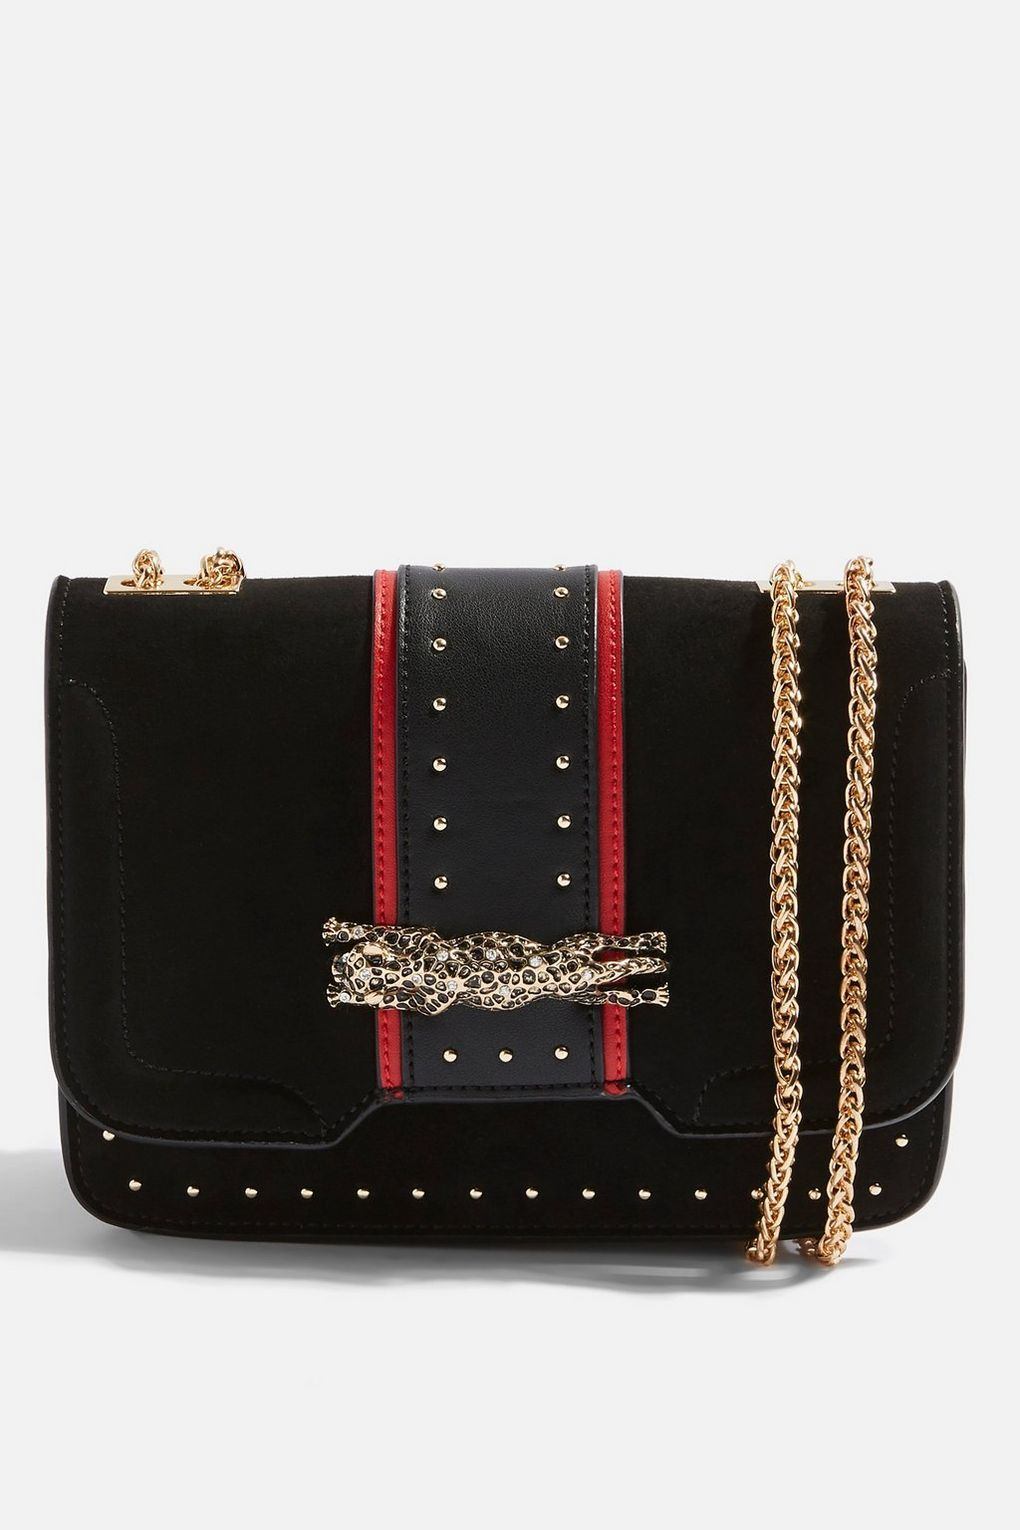 2f6f8a2d5 Panther Piece Cross Body Bag - Bags & Purses - Bags & Accessories - Topshop